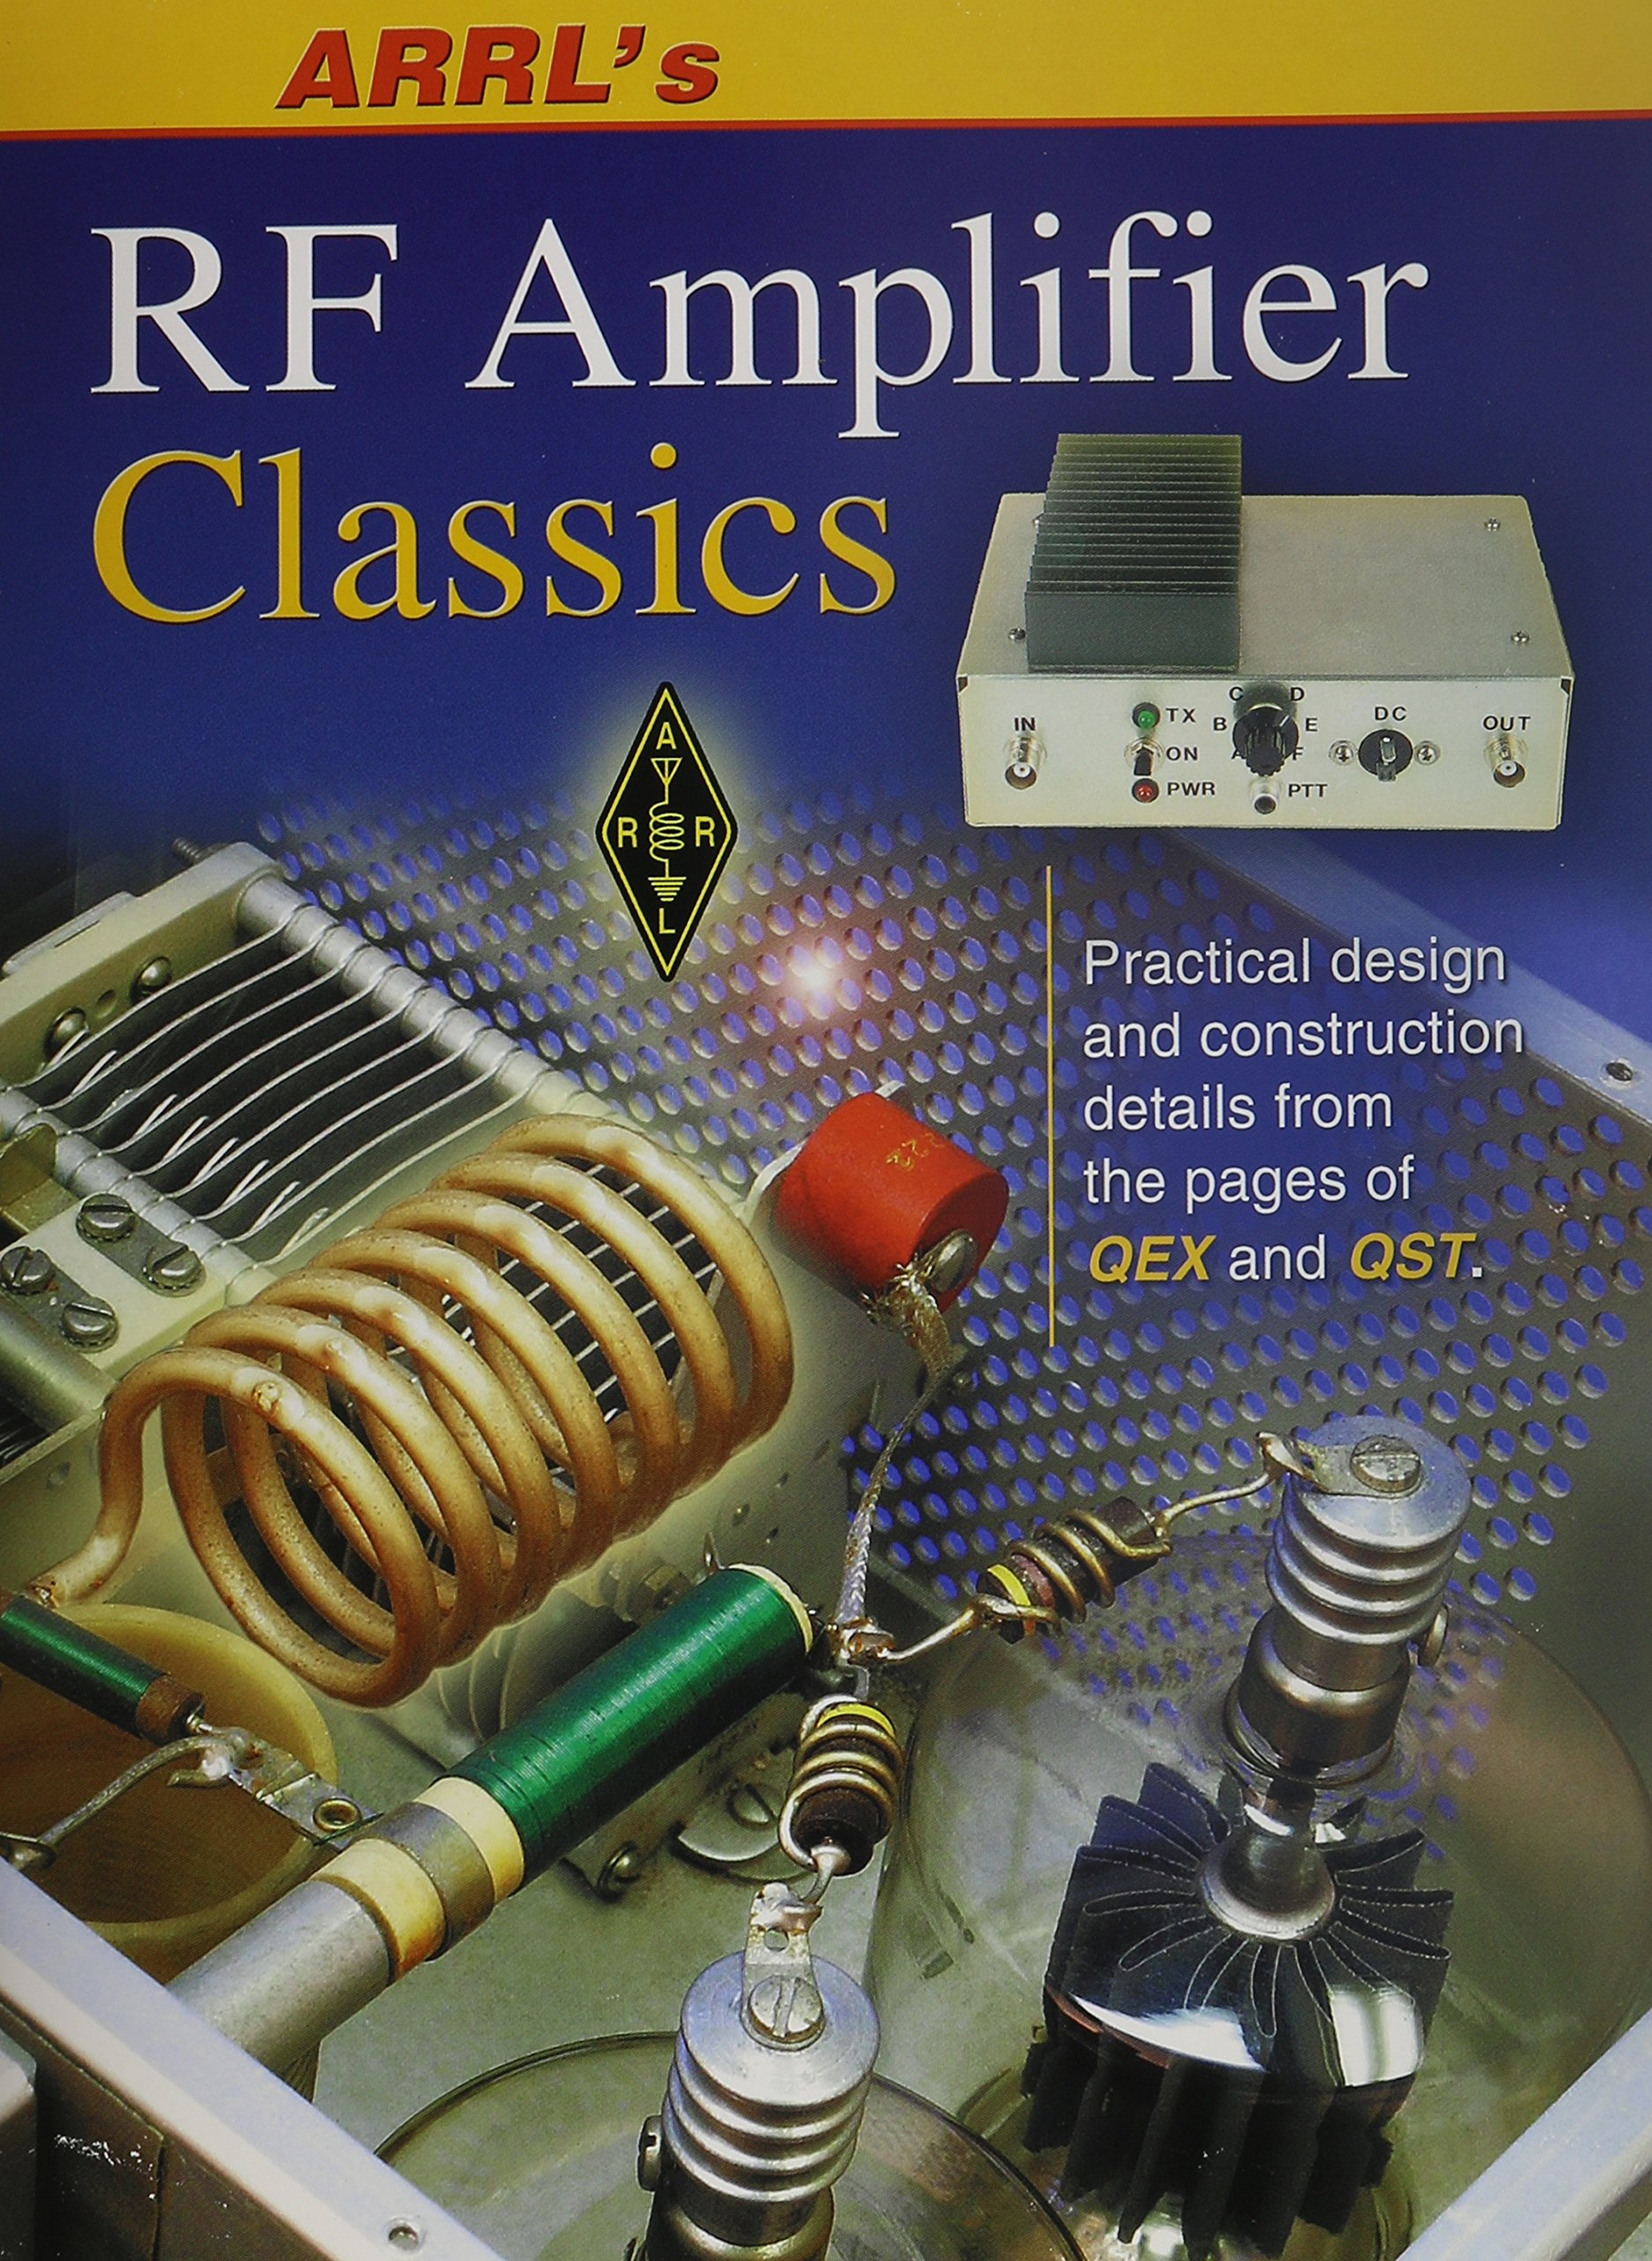 Antenna Manufacturing / Suppliers